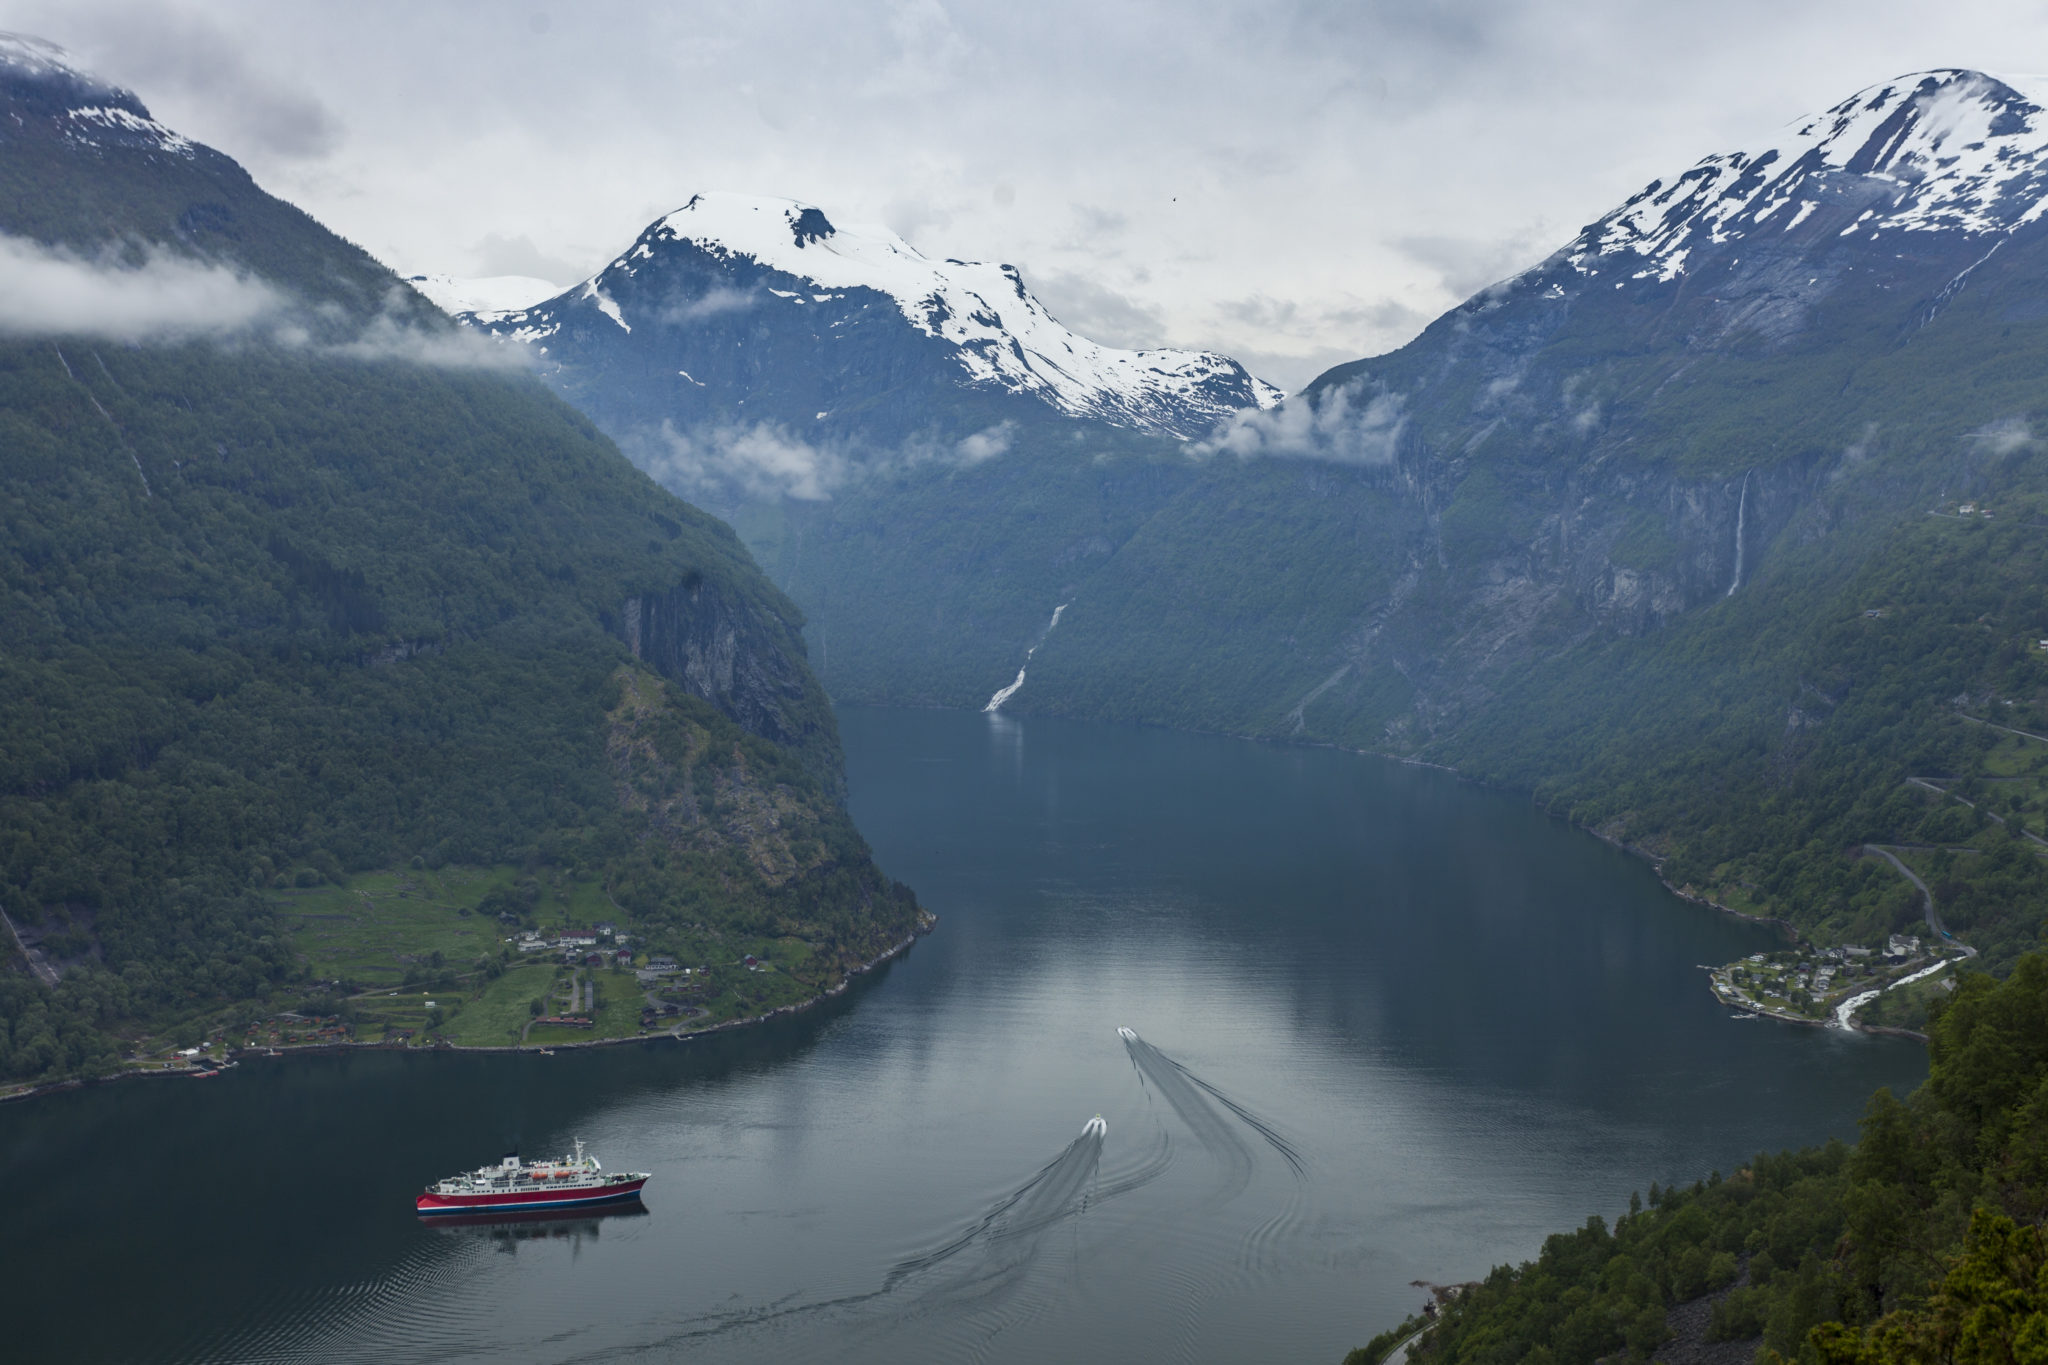 Norway Geirganger Fjords Expedition Ship Aerial Landscape